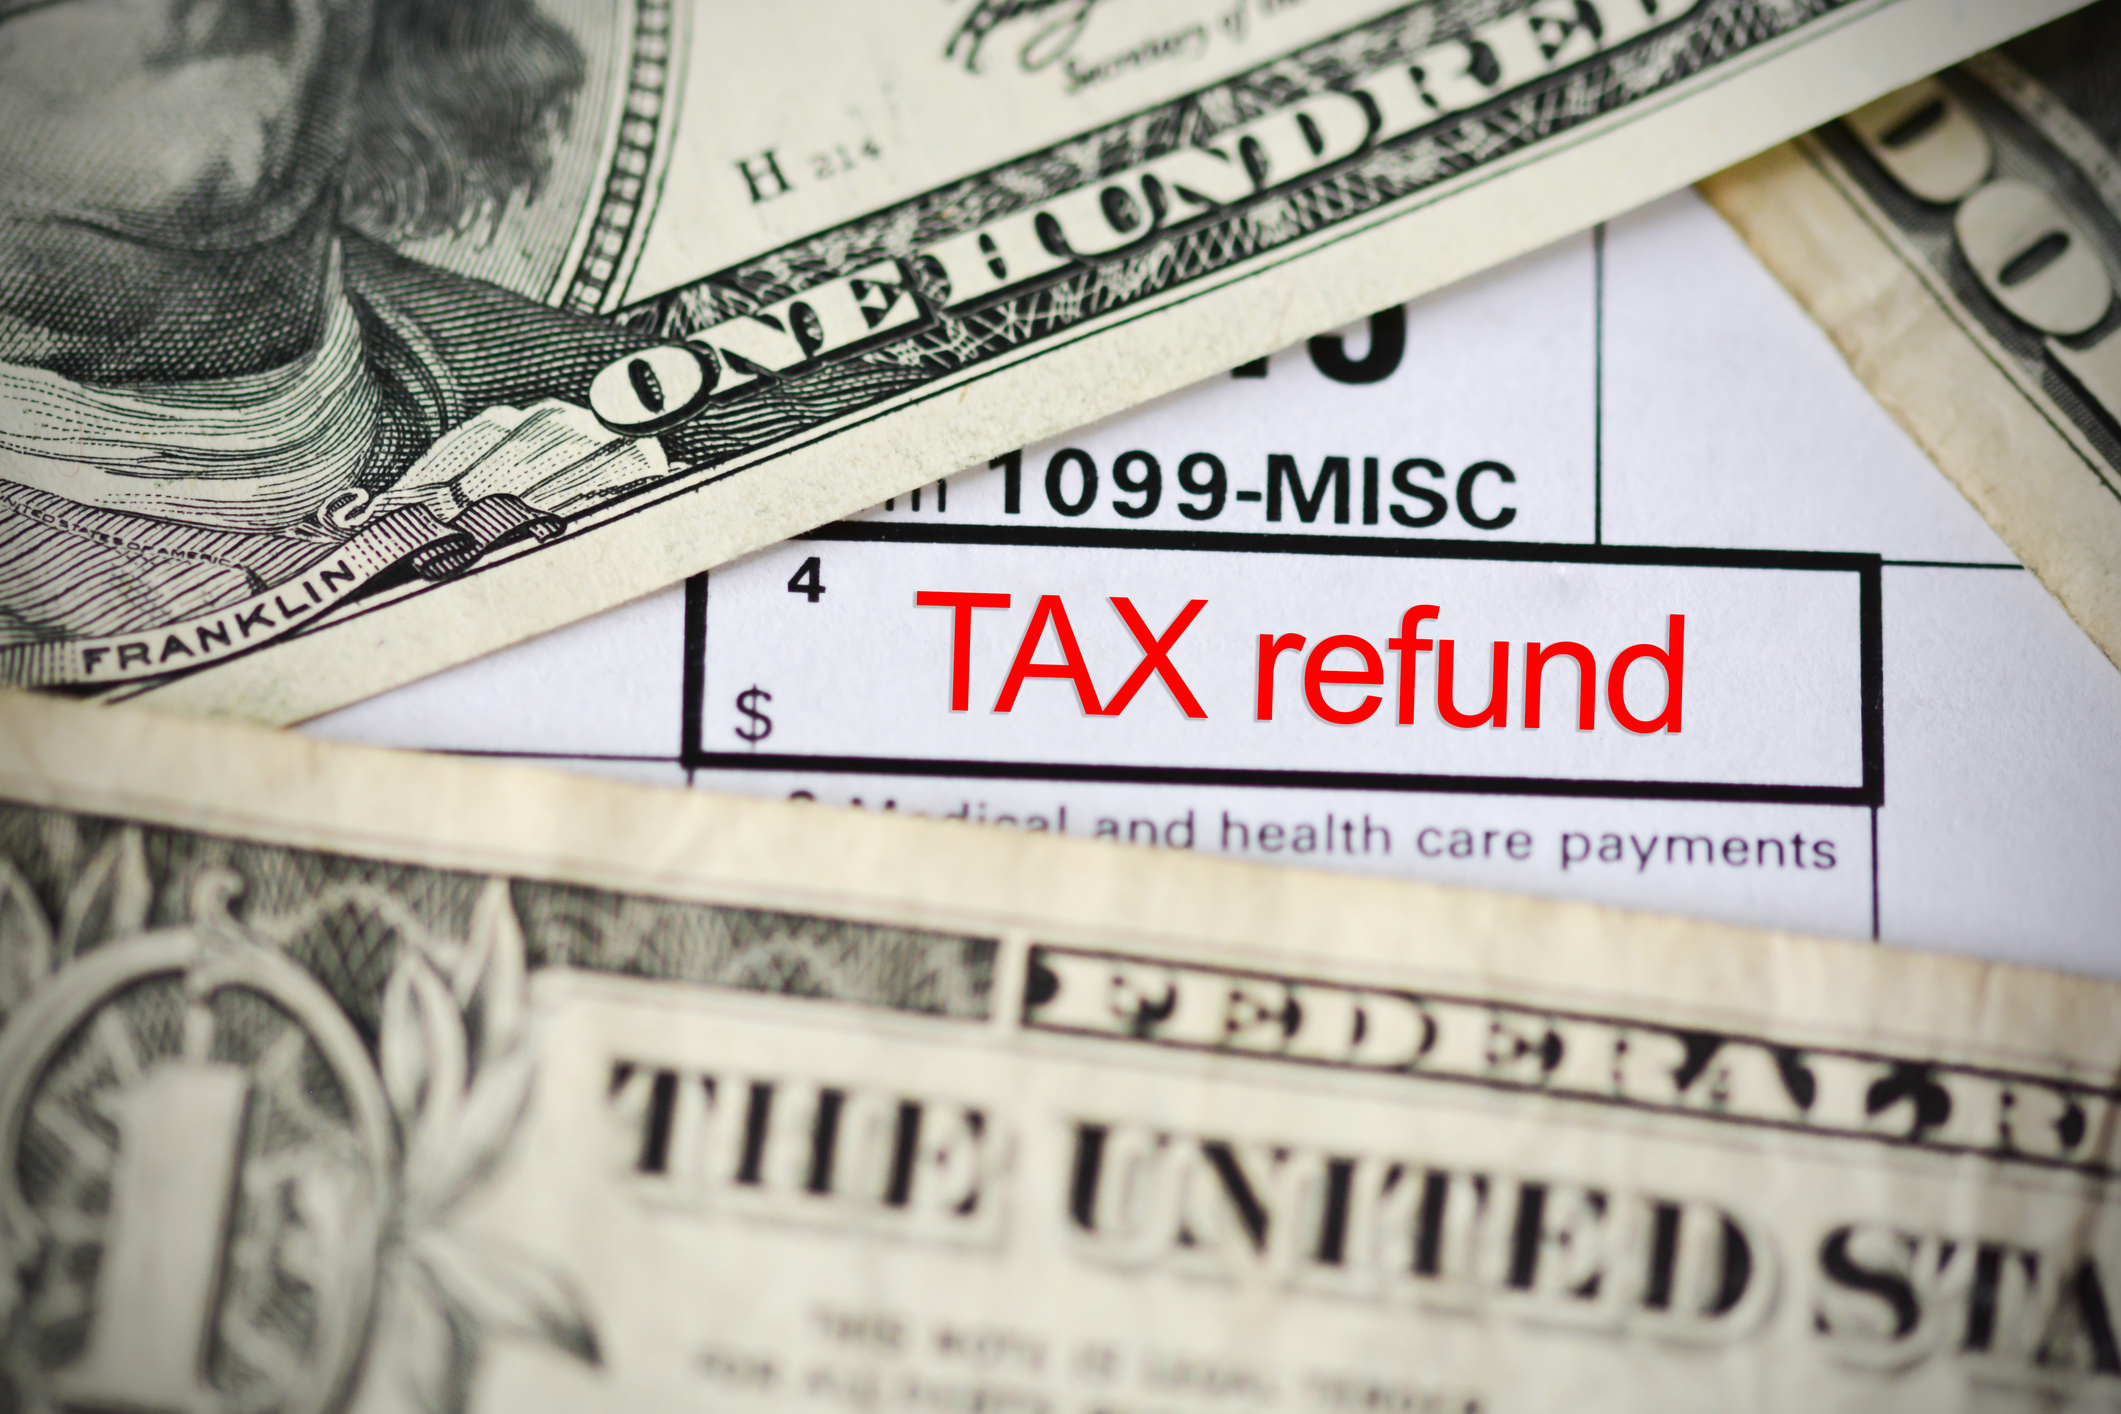 Claim a tax refund concept with form template close up